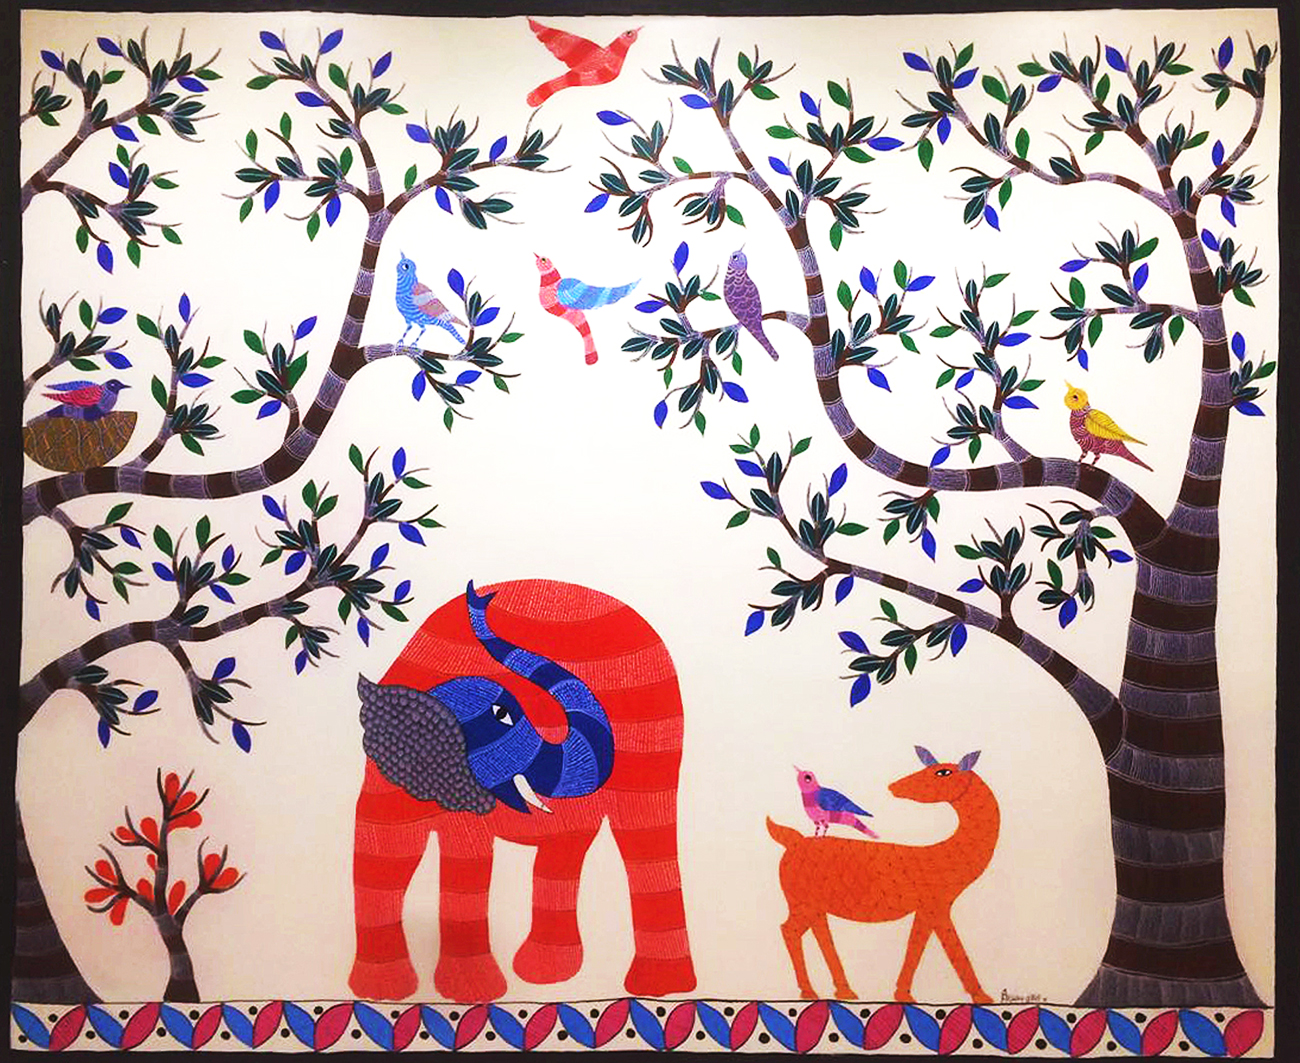 Gond forest scene was painted a wall mural. The qualities that the organisation was trying to communicate was portrayed by the corresponding animal breathing life into that quality. The gentle giant of the forest known for its intelligence- the Elephant has been shown.